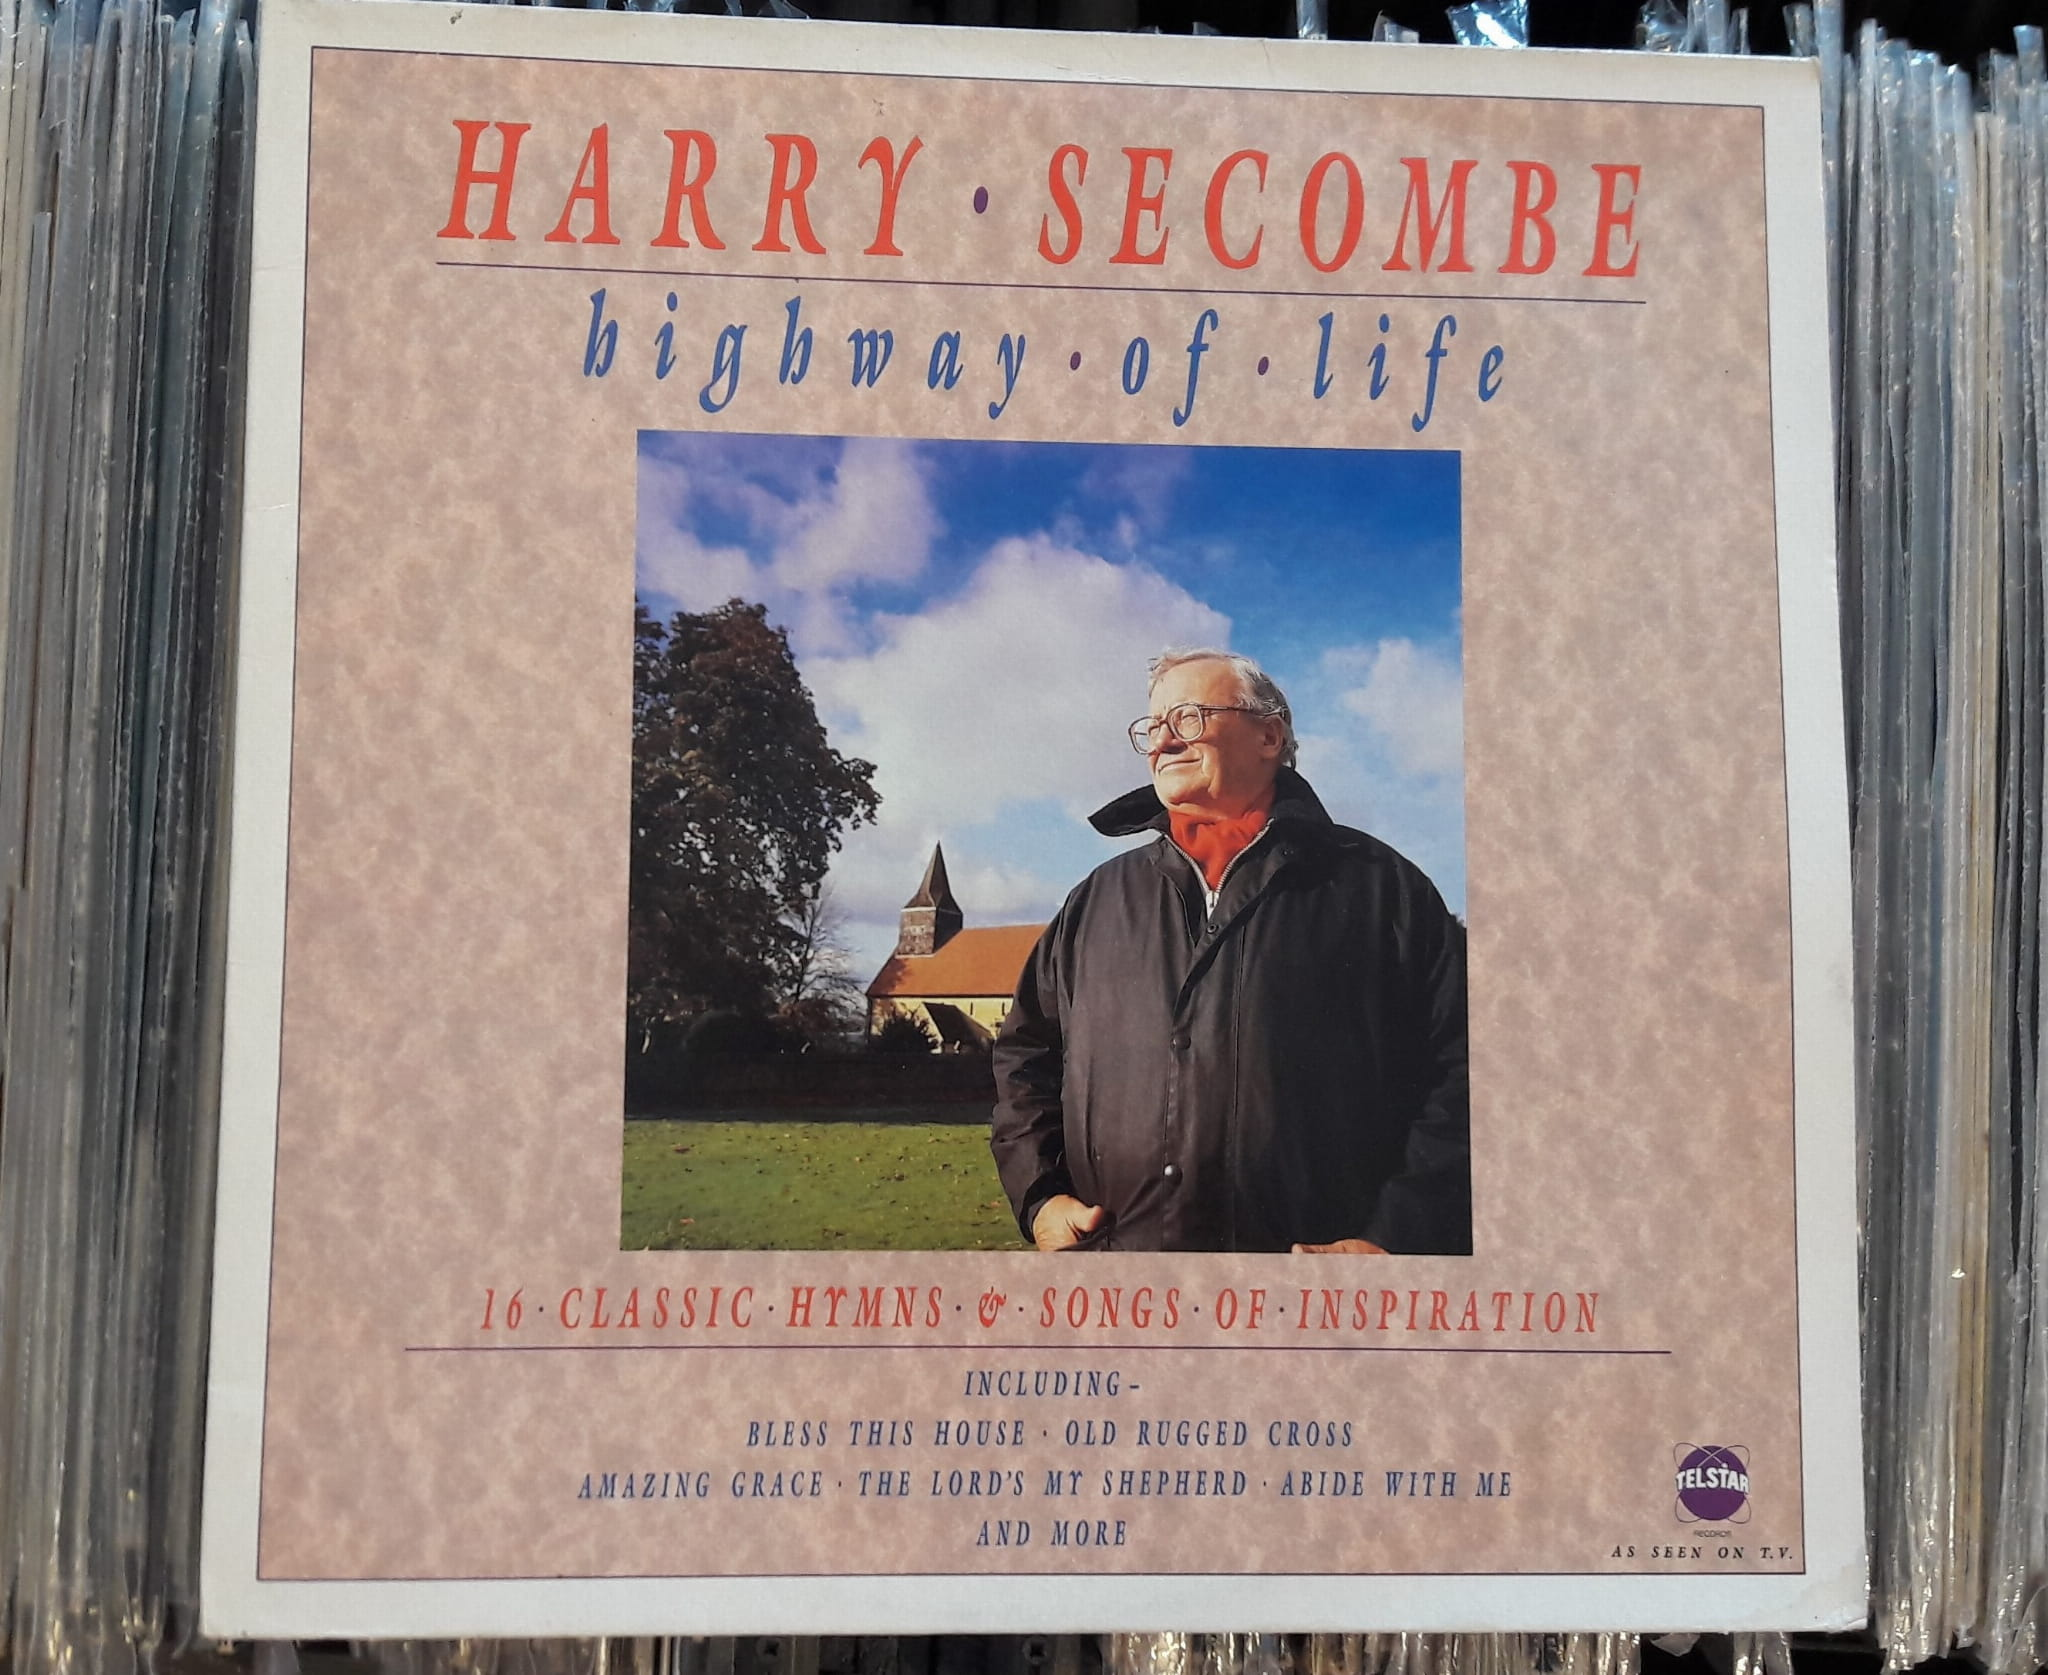 Harry Secombe Highway Of Life Telstar Star 2289 Płyta Winylowa